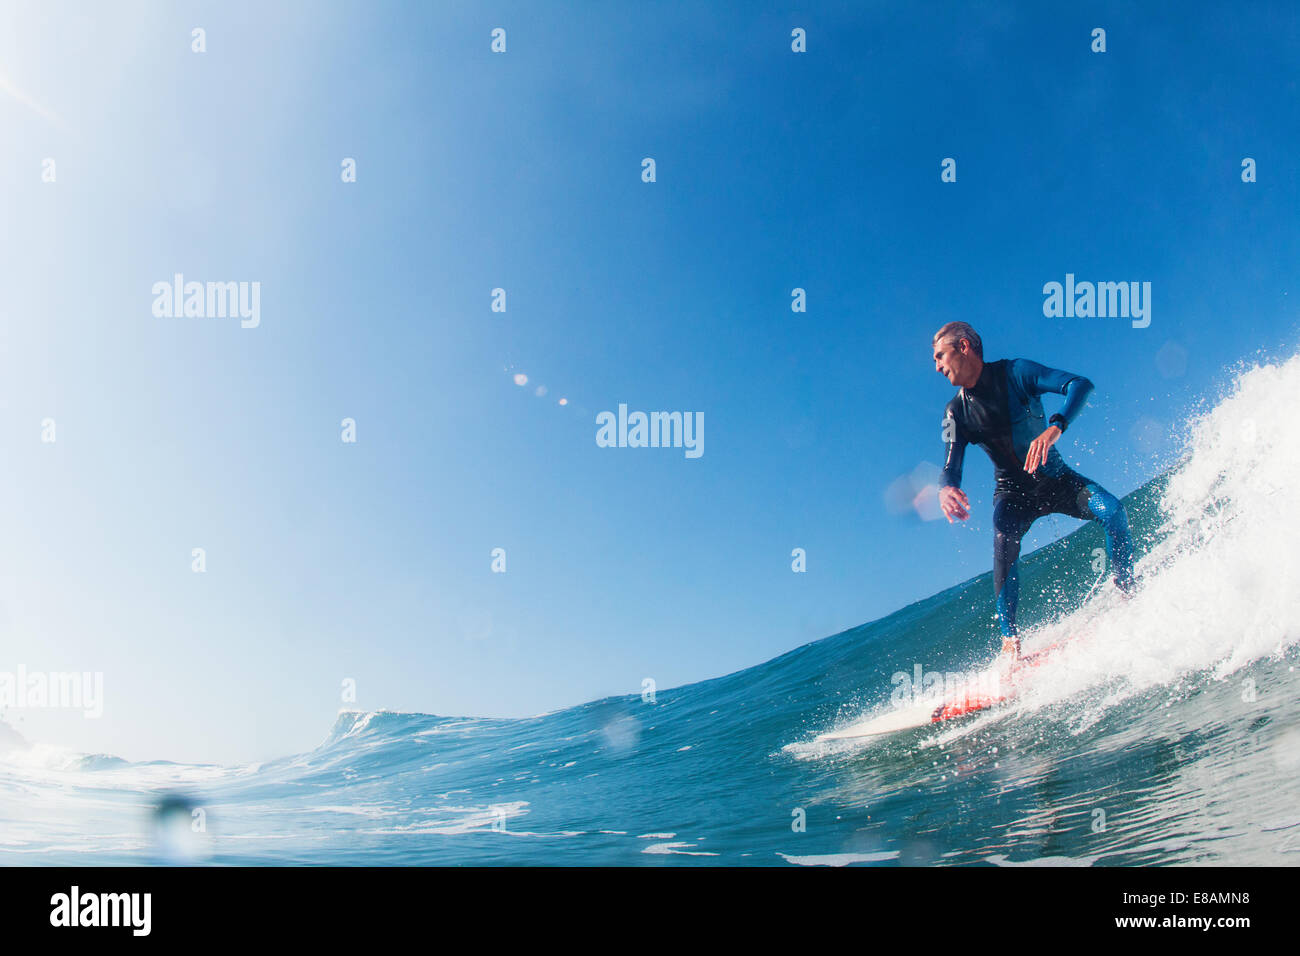 Mid adult man surfing, Leucadia, California, USA Photo Stock